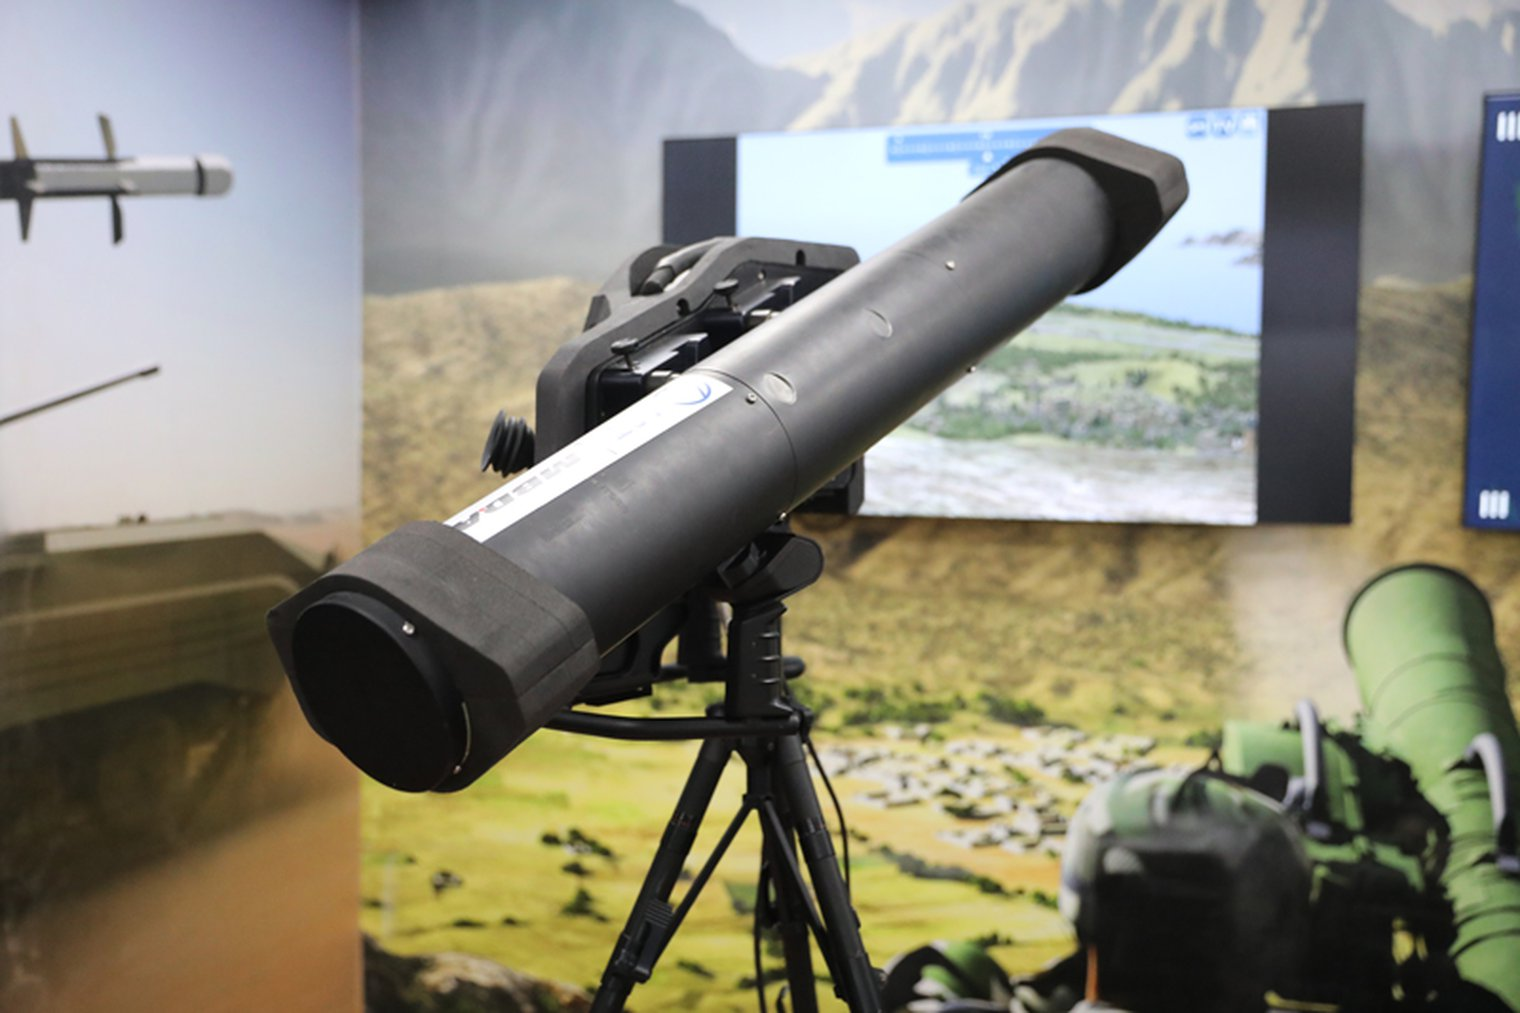 Global Defence News: MBDA clears Spear 3 missile reviews